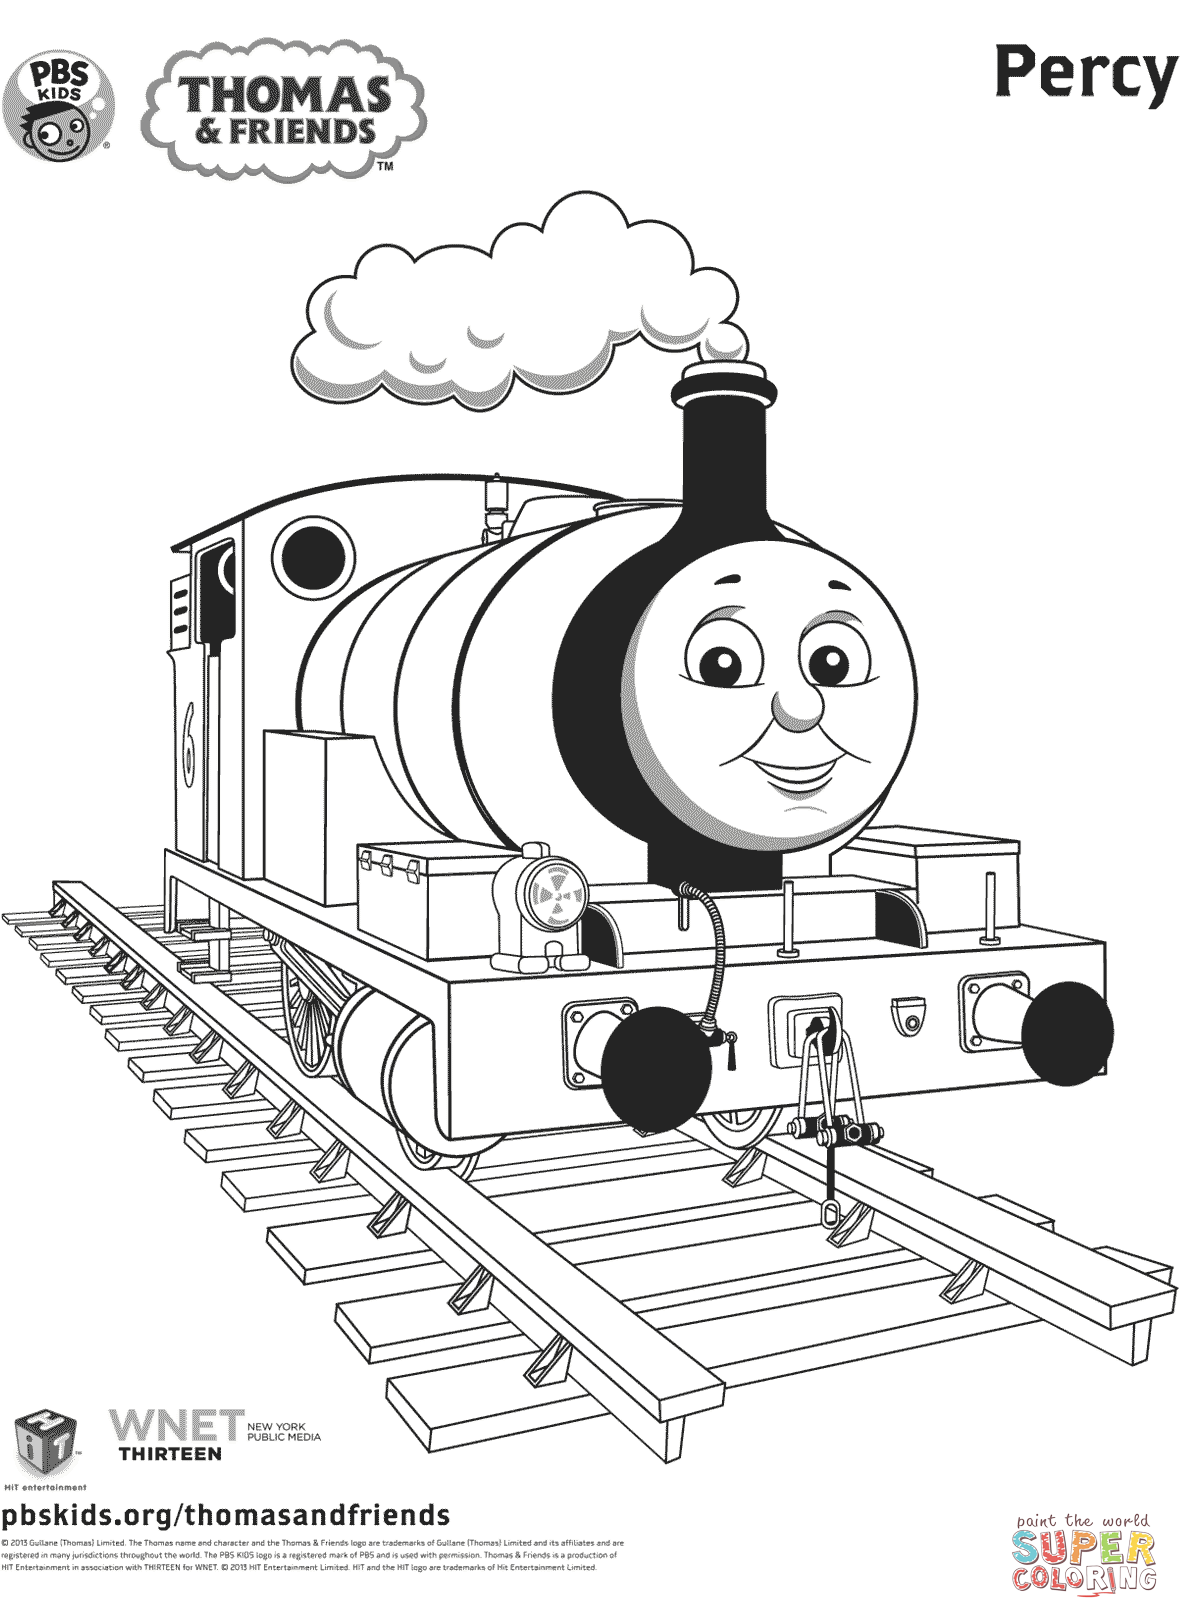 thomas and friends coloring sheets get this preschool printables of thomas and friends coloring thomas sheets and friends